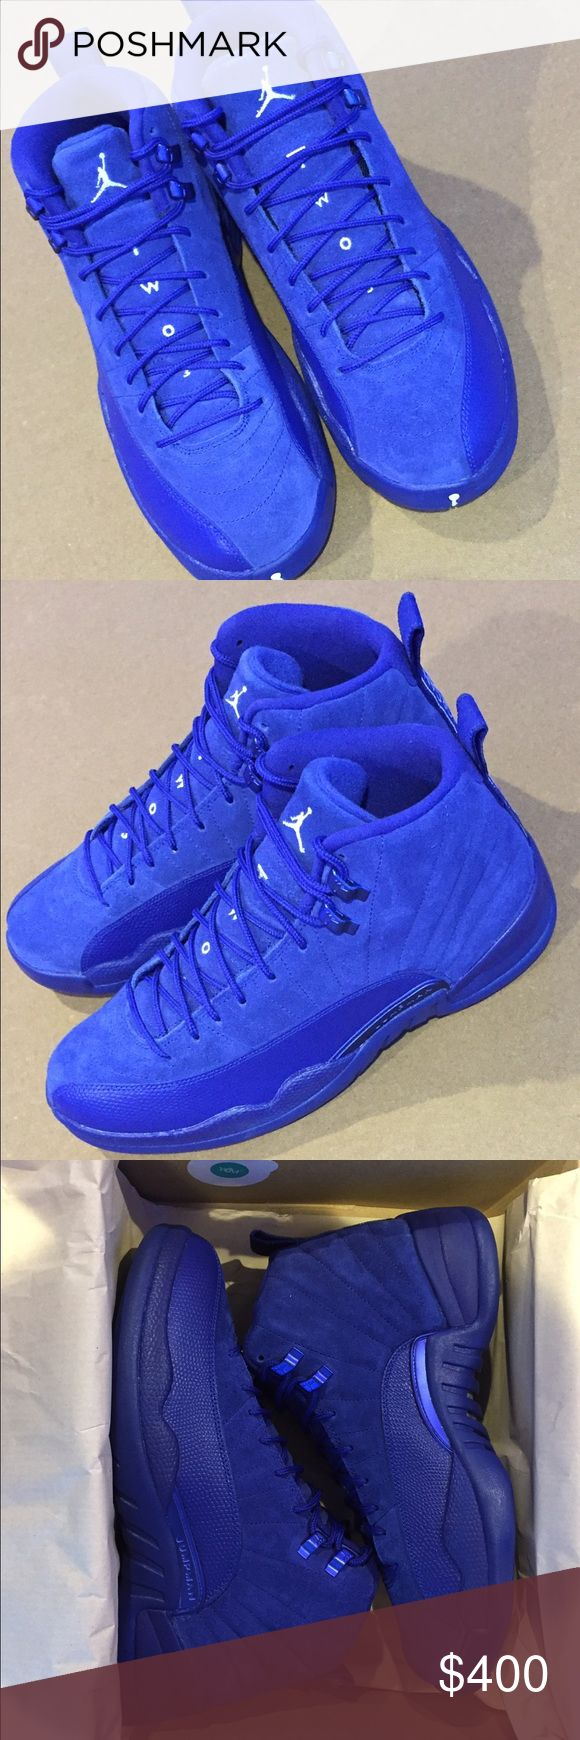 Jordan 12 Royal Blue I'm selling a pair of the hottest colorway of 2016. Men's Jordan 12 Royal Blue Suede size 9.5 BRAND NEW in its original box with receipt. Jordan Shoes Sneakers